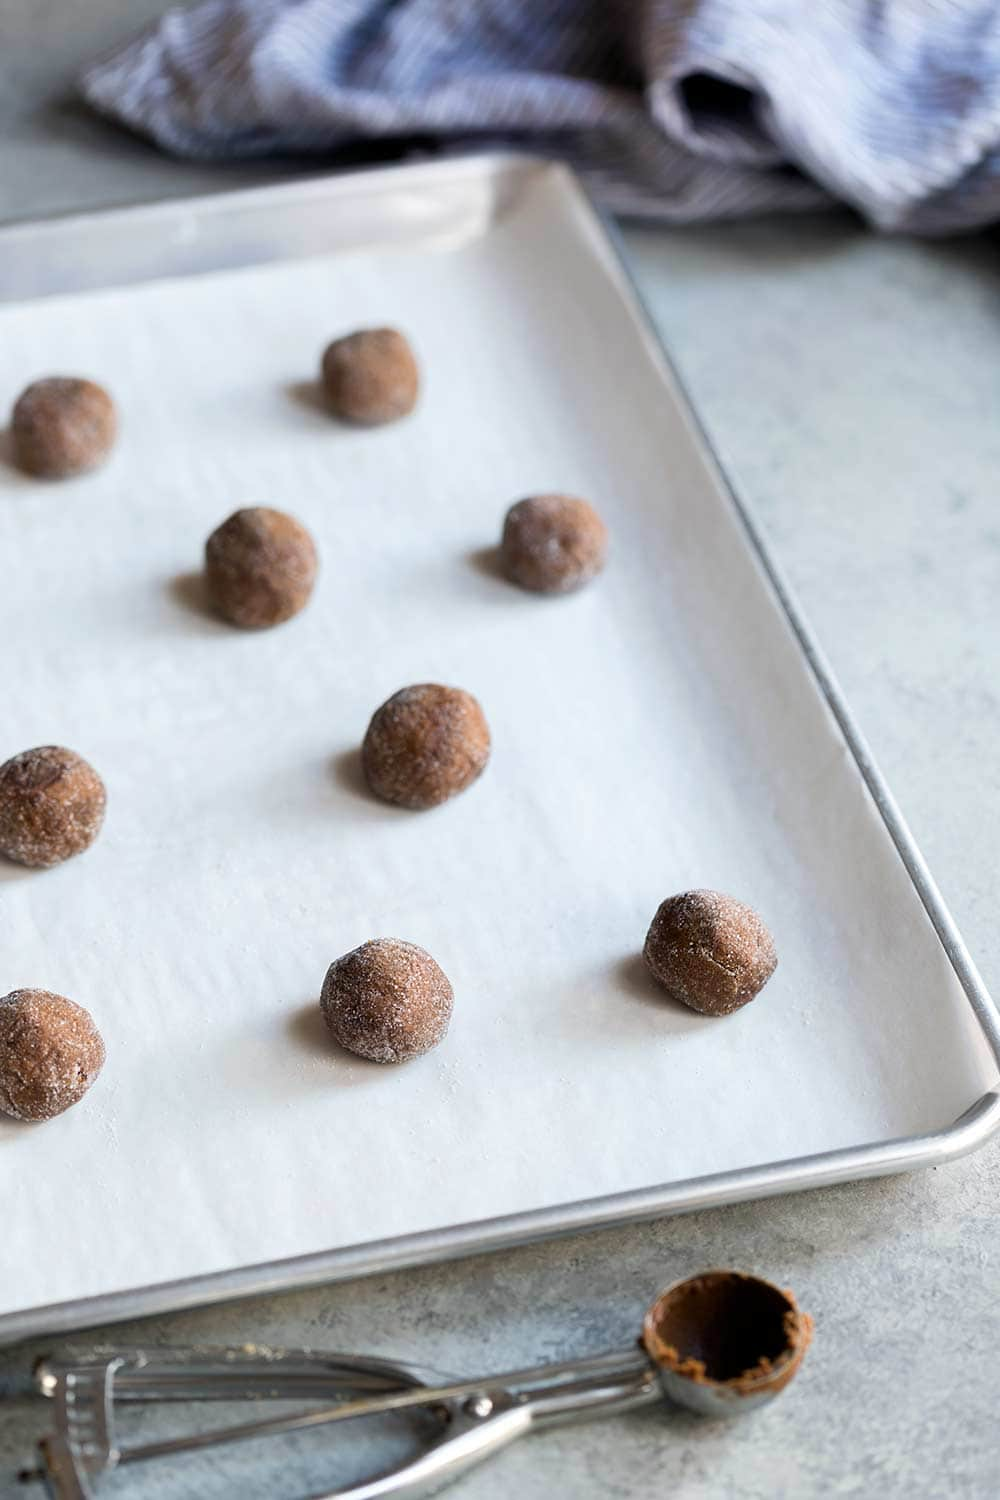 Gingerbread cookie dough scooped into balls on a cookie sheet